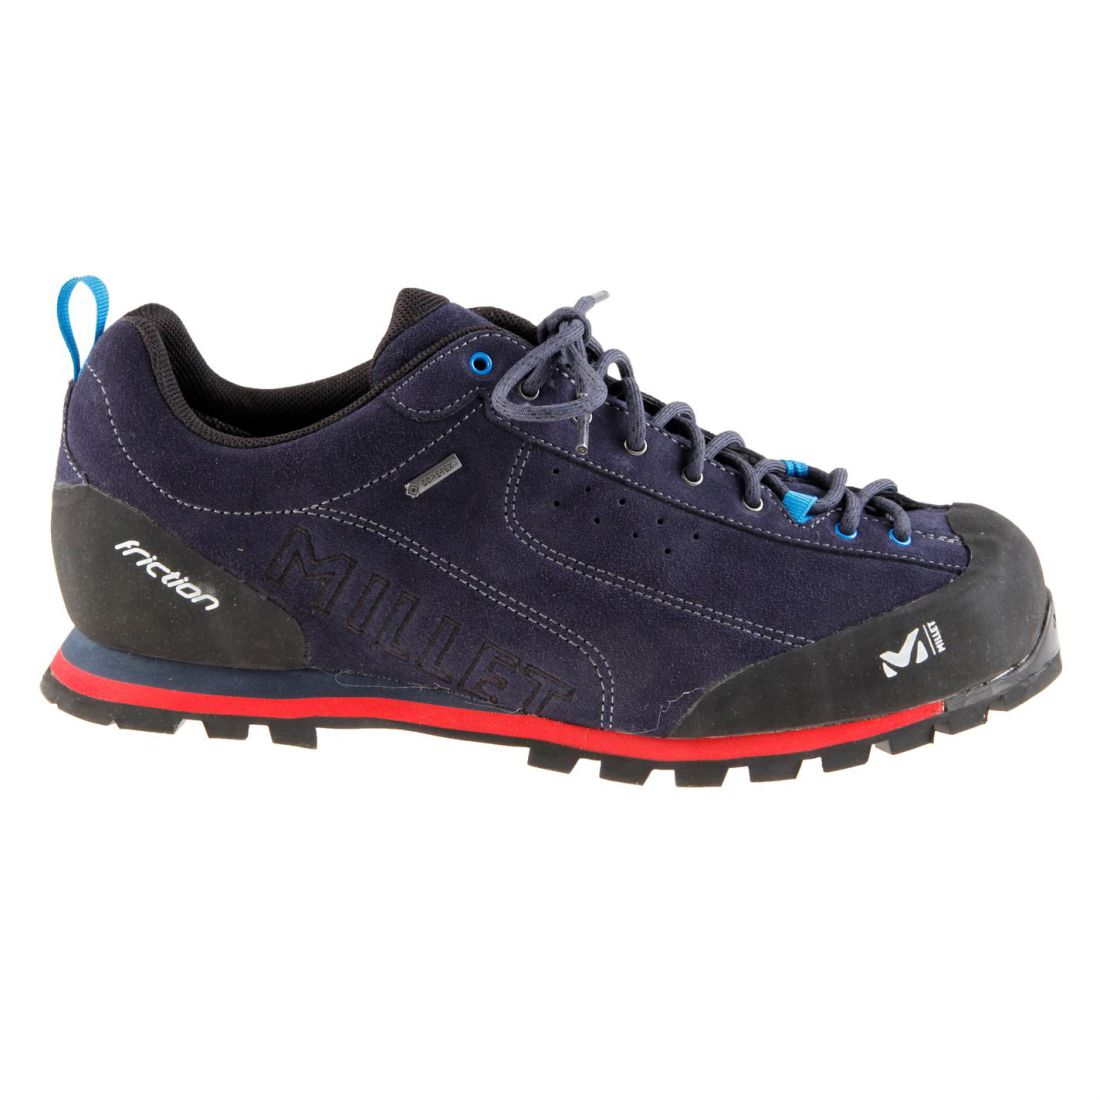 Millet Mens Friction GTX Walking shoes Waterproof Lace Up Padded Ankle Collar